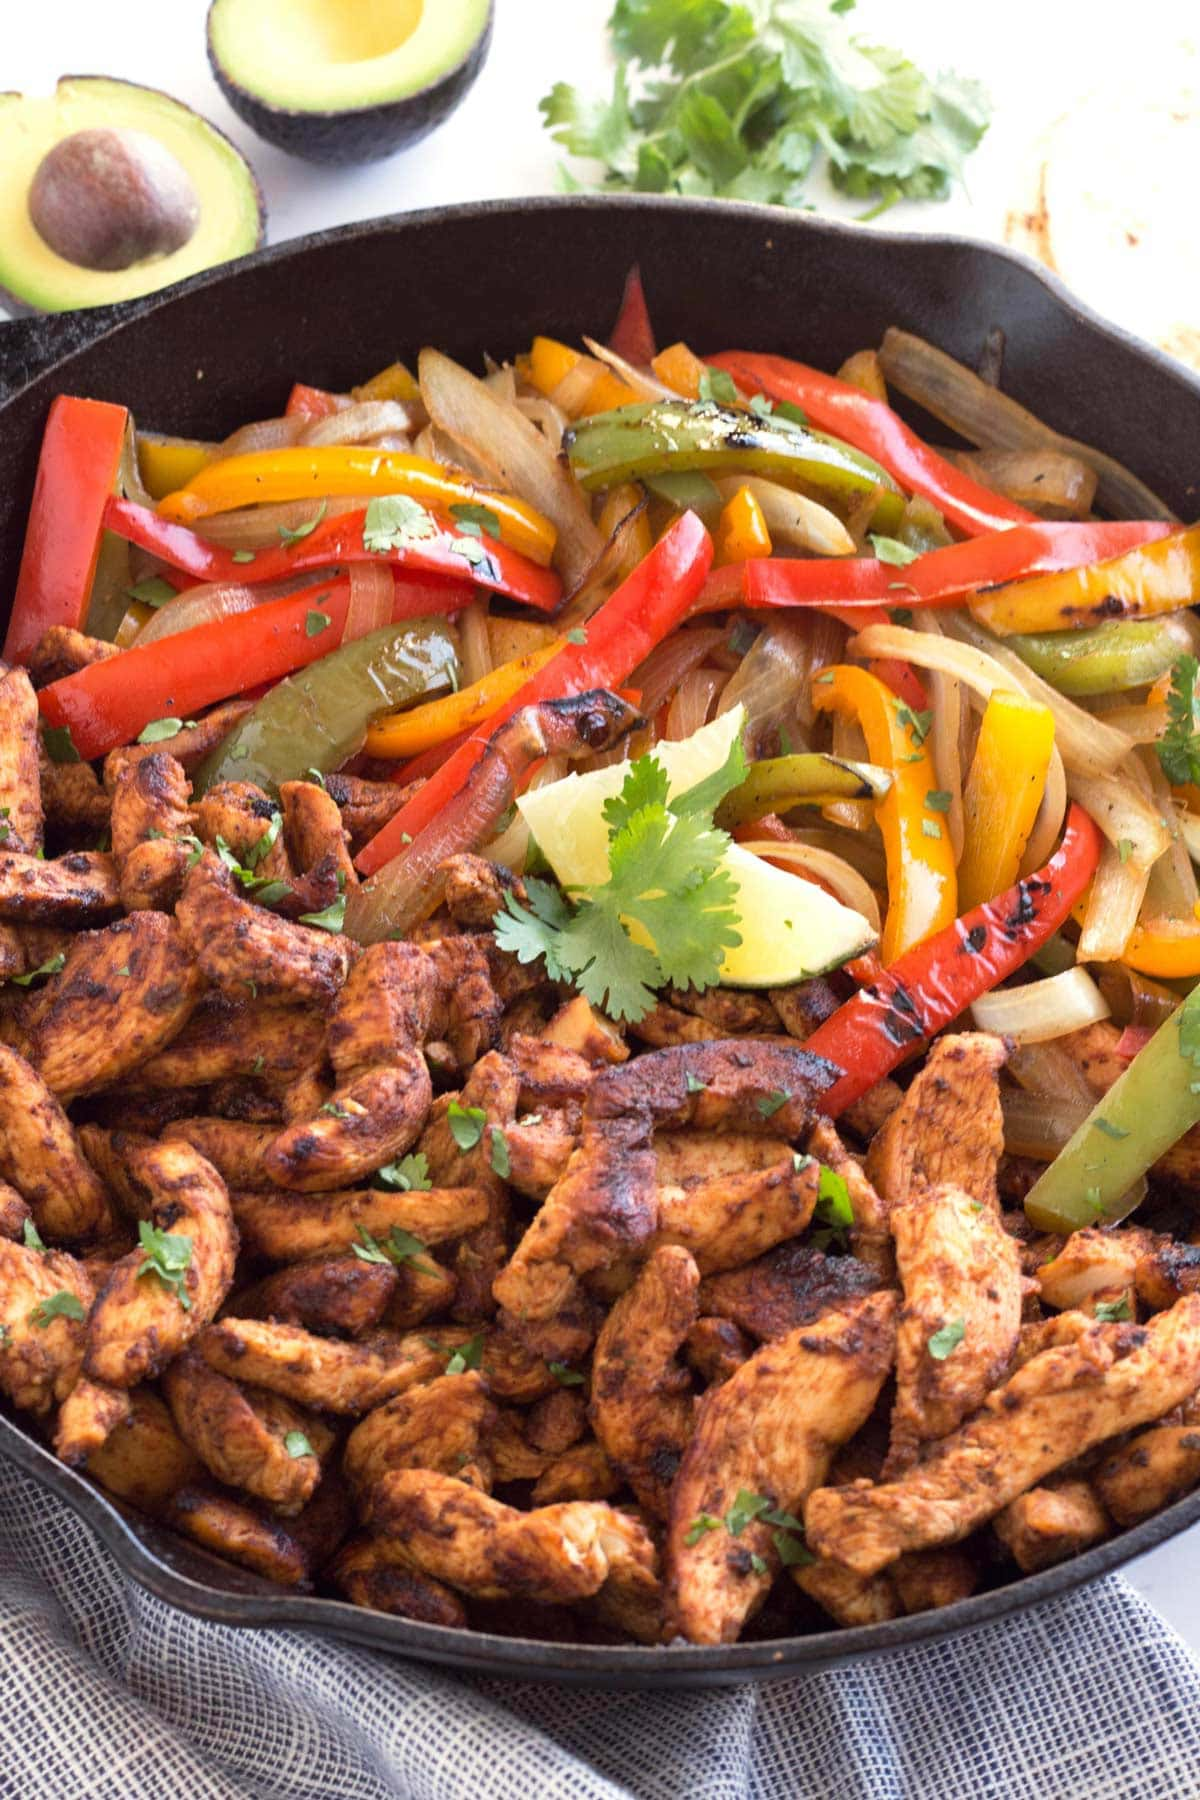 a 12-inch skillet filled with chicken fajitas, lime, avocado, and cilantro.